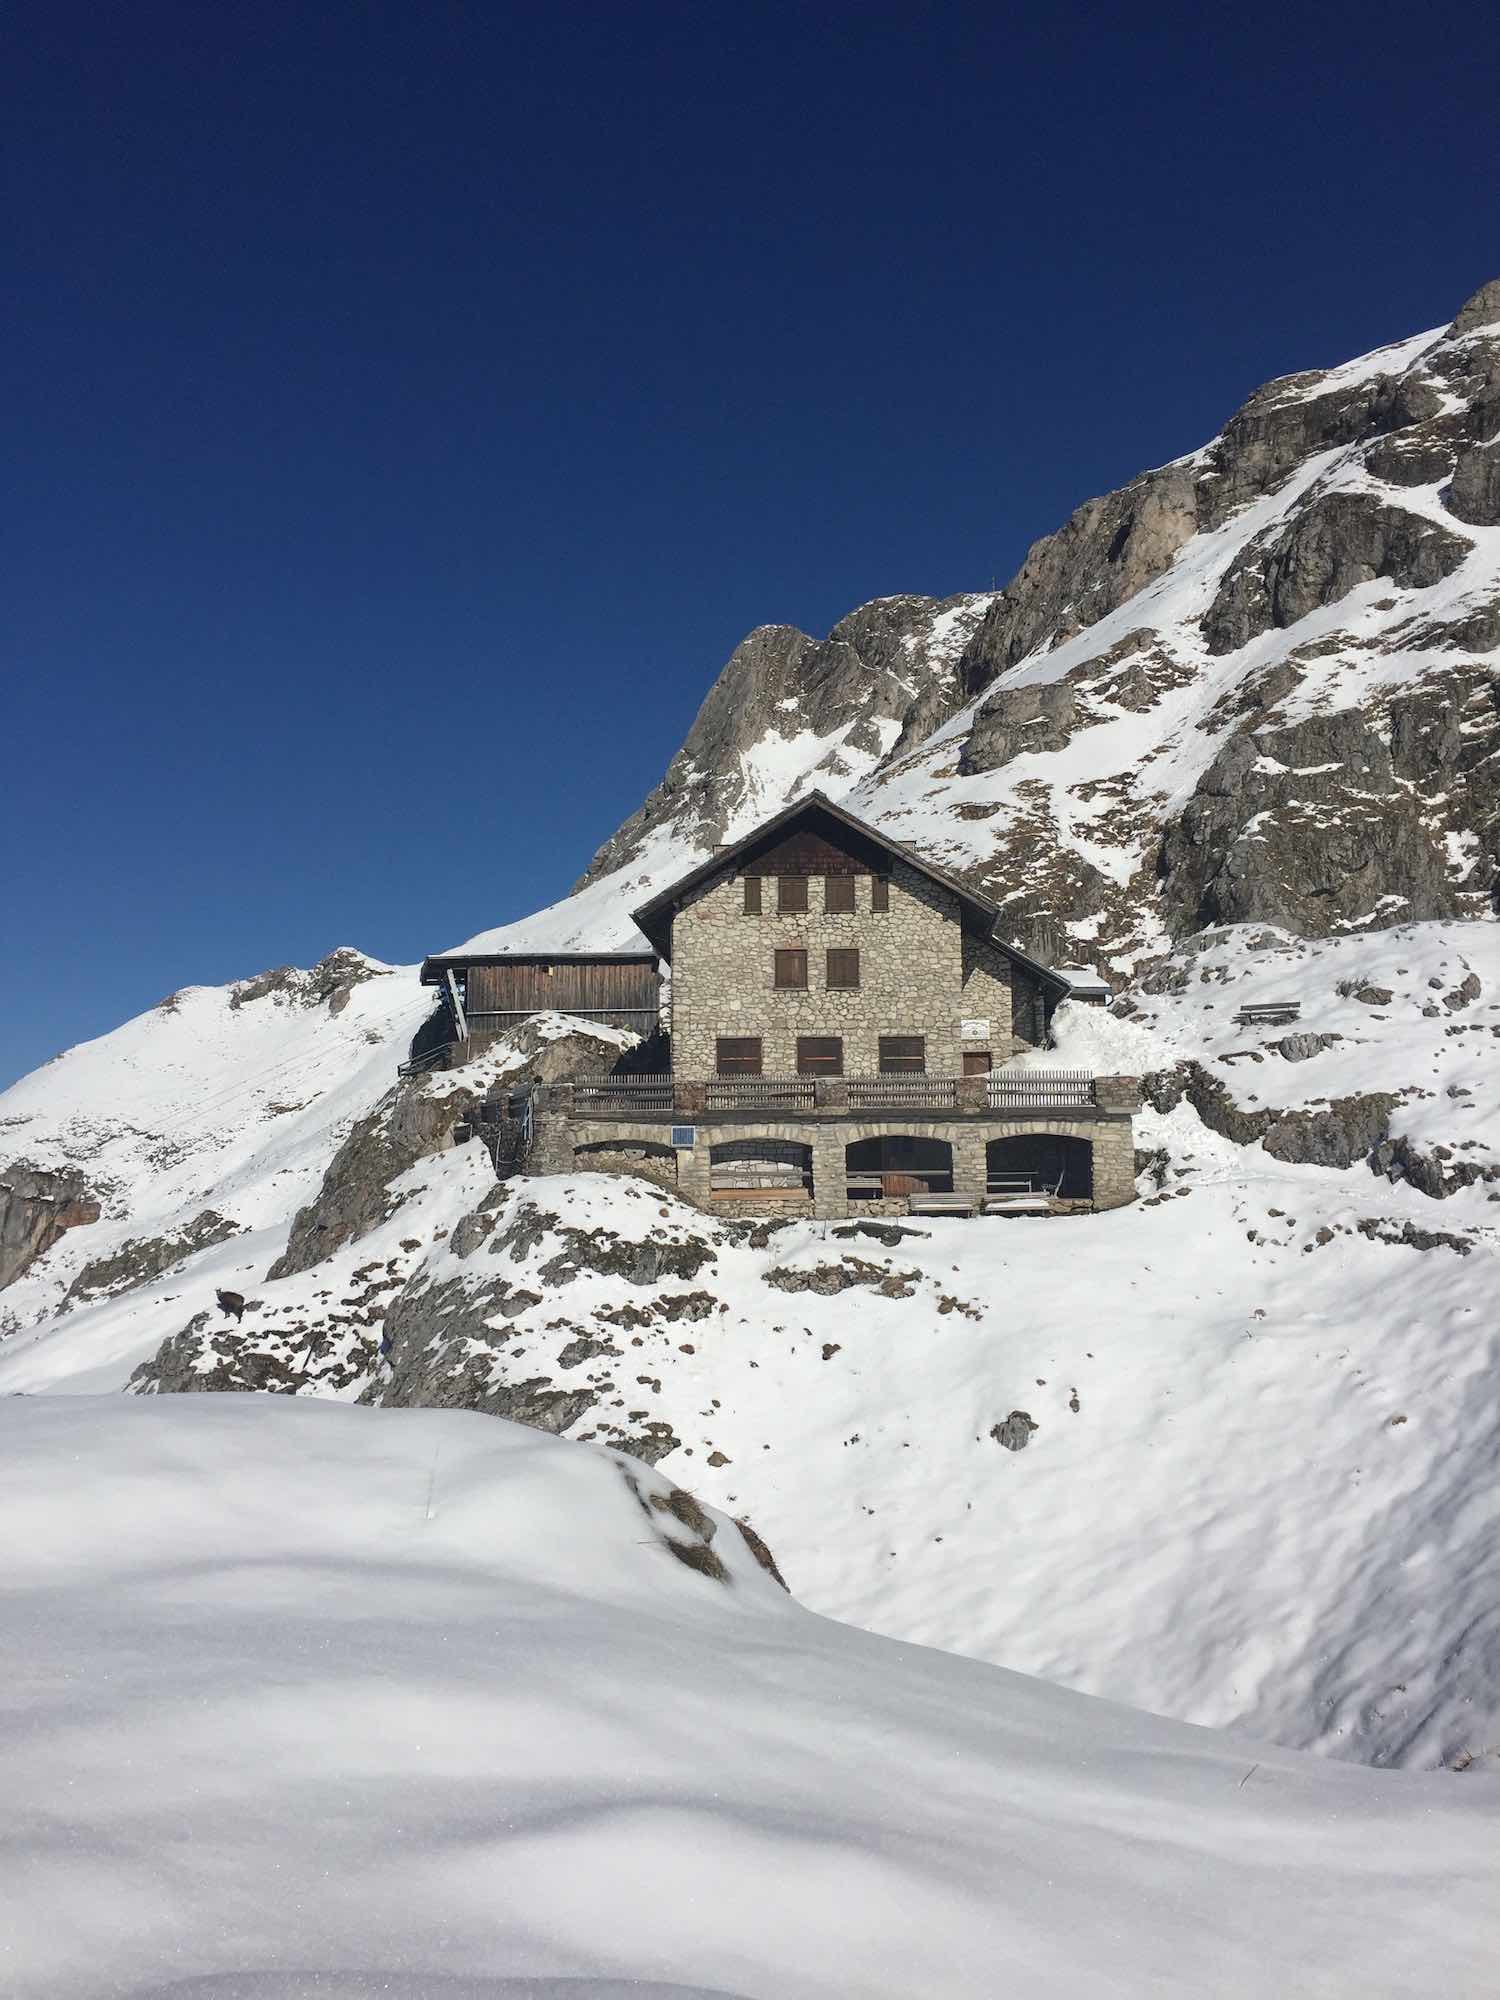 Bad Kissinger Hütte